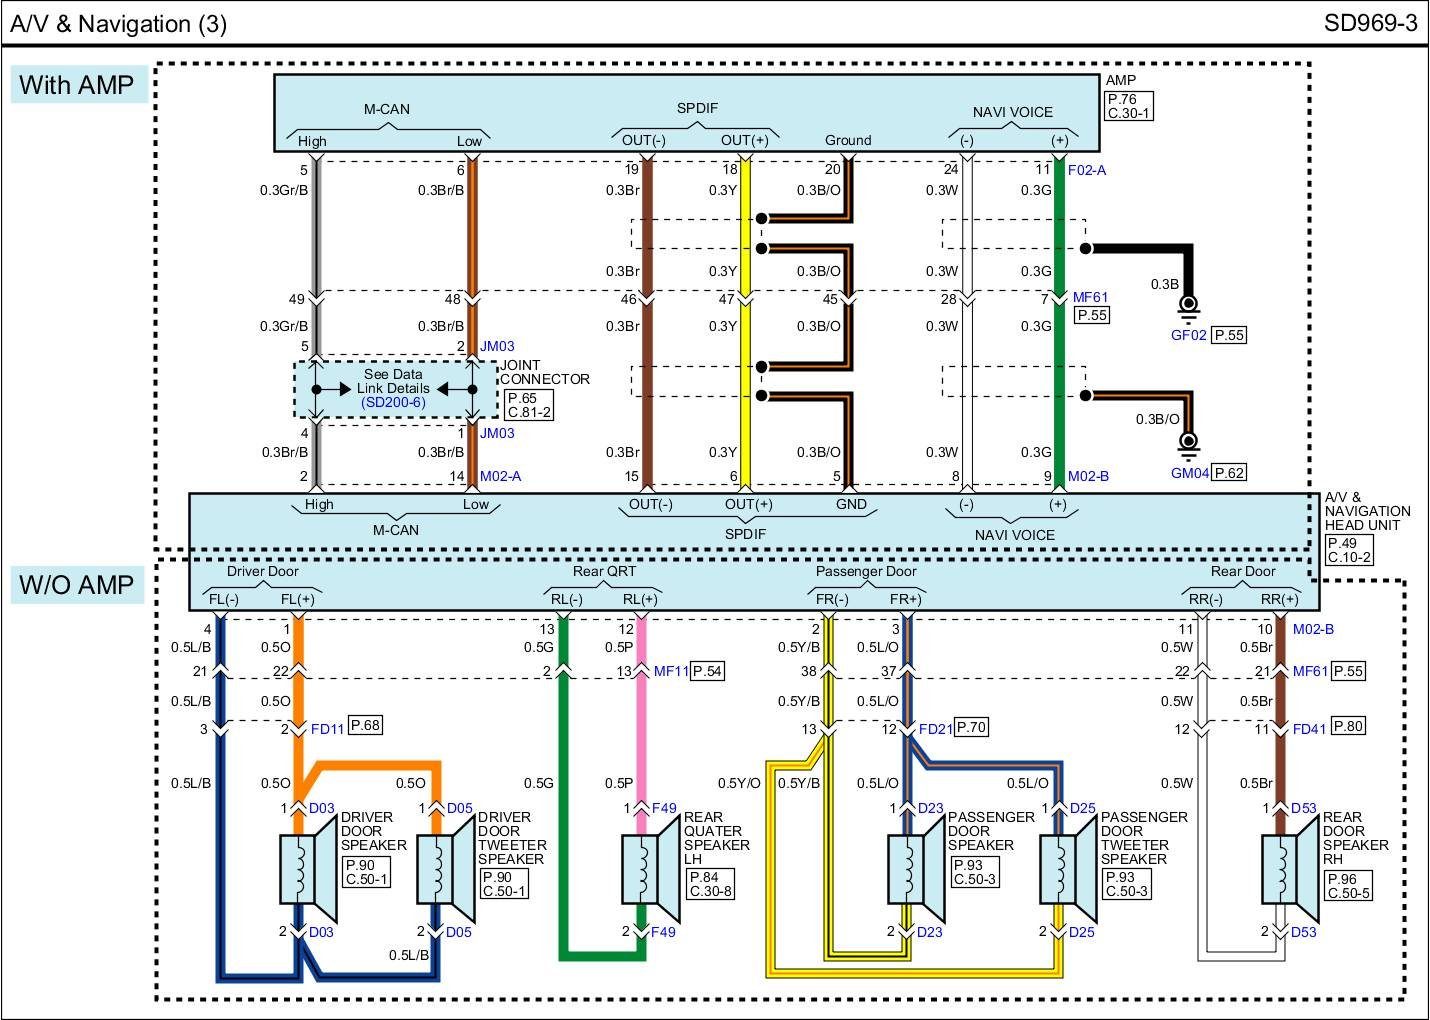 vt stereo wiring diagram vw beetle alternator aftermarket subwoofers problem on 2014 veloster turbo - page 5